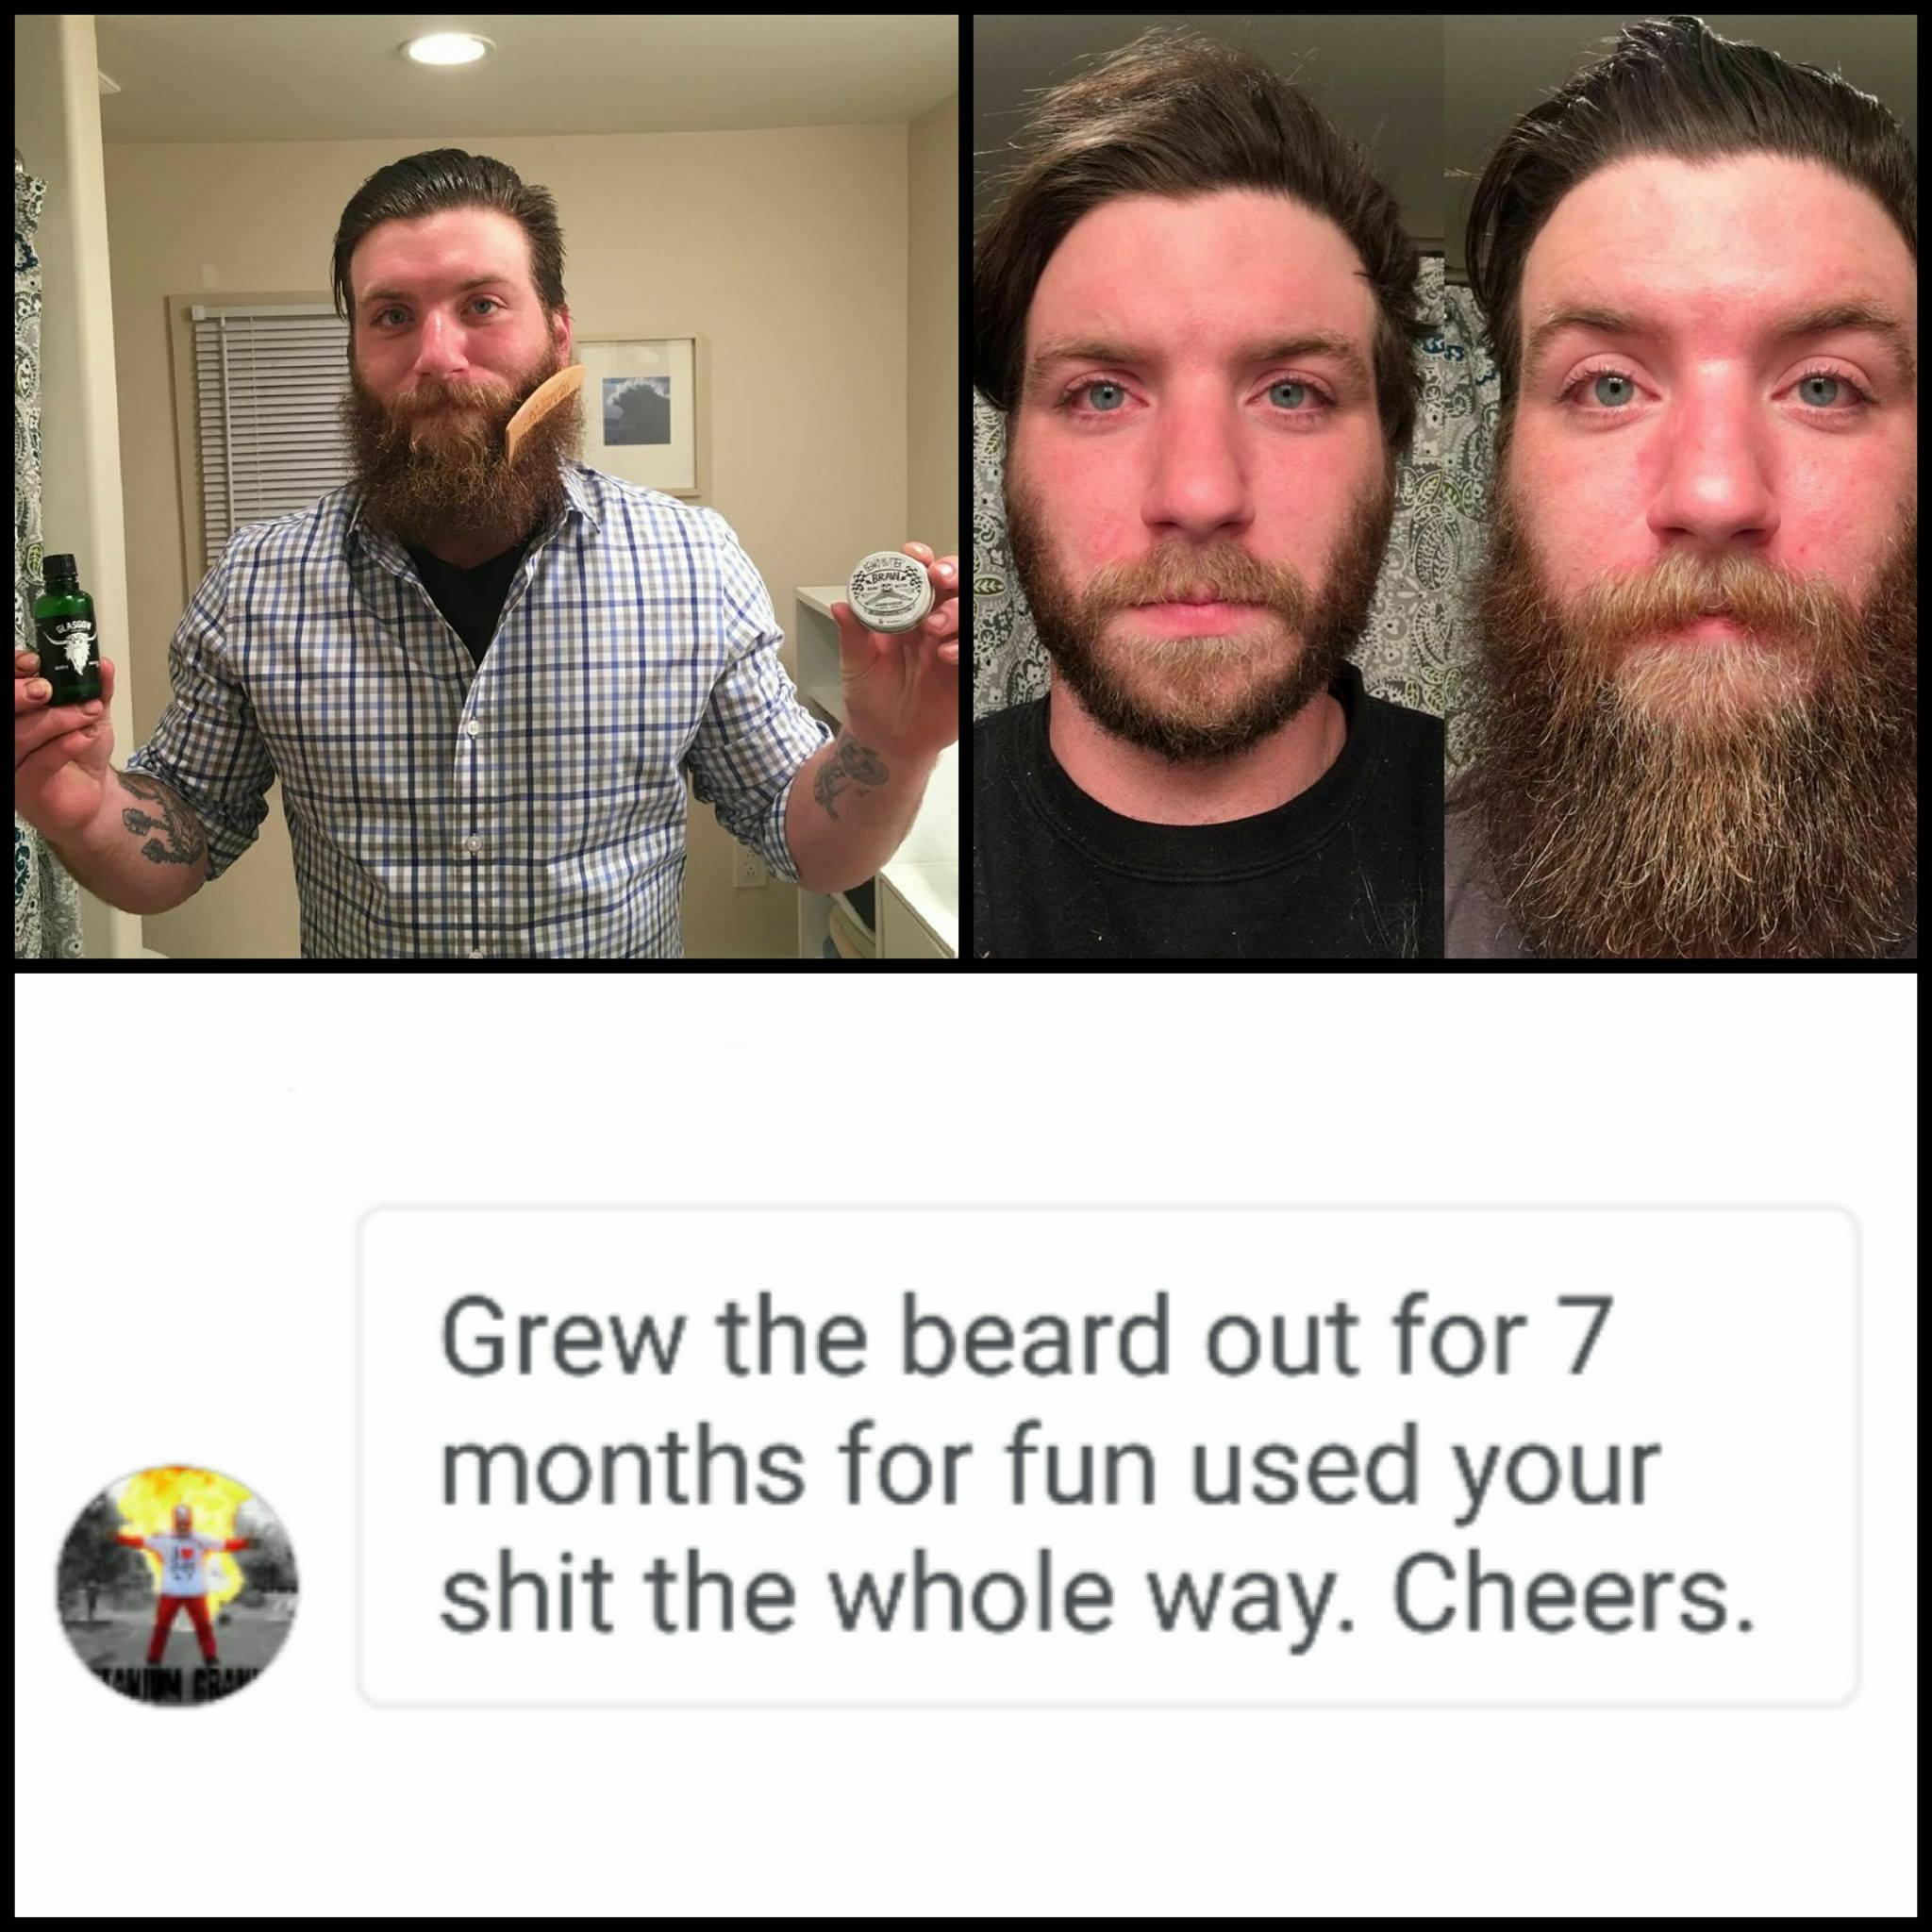 Braw Beard Oils Scotland patchy beard growth